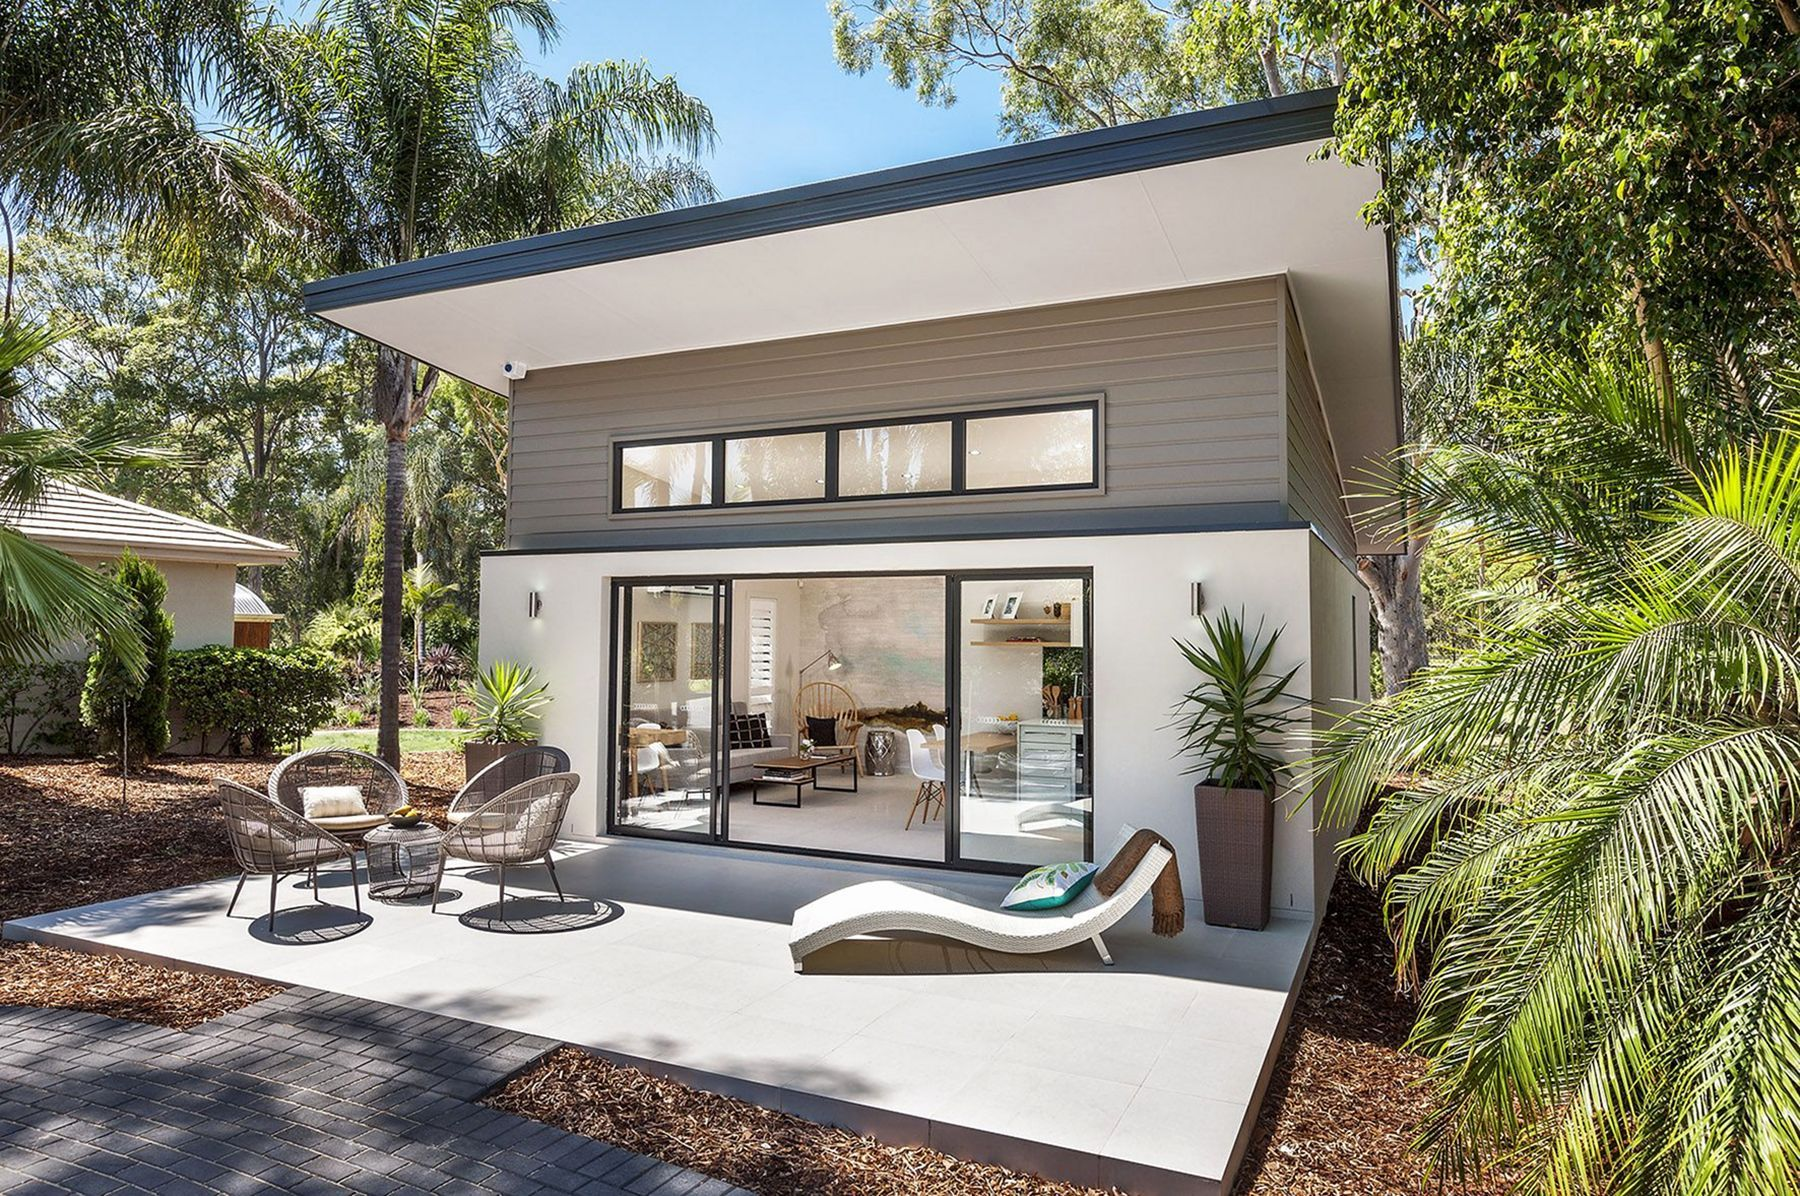 10 beautiful tiny house design ideas for your inspiration on beautiful tiny home ever id=91754